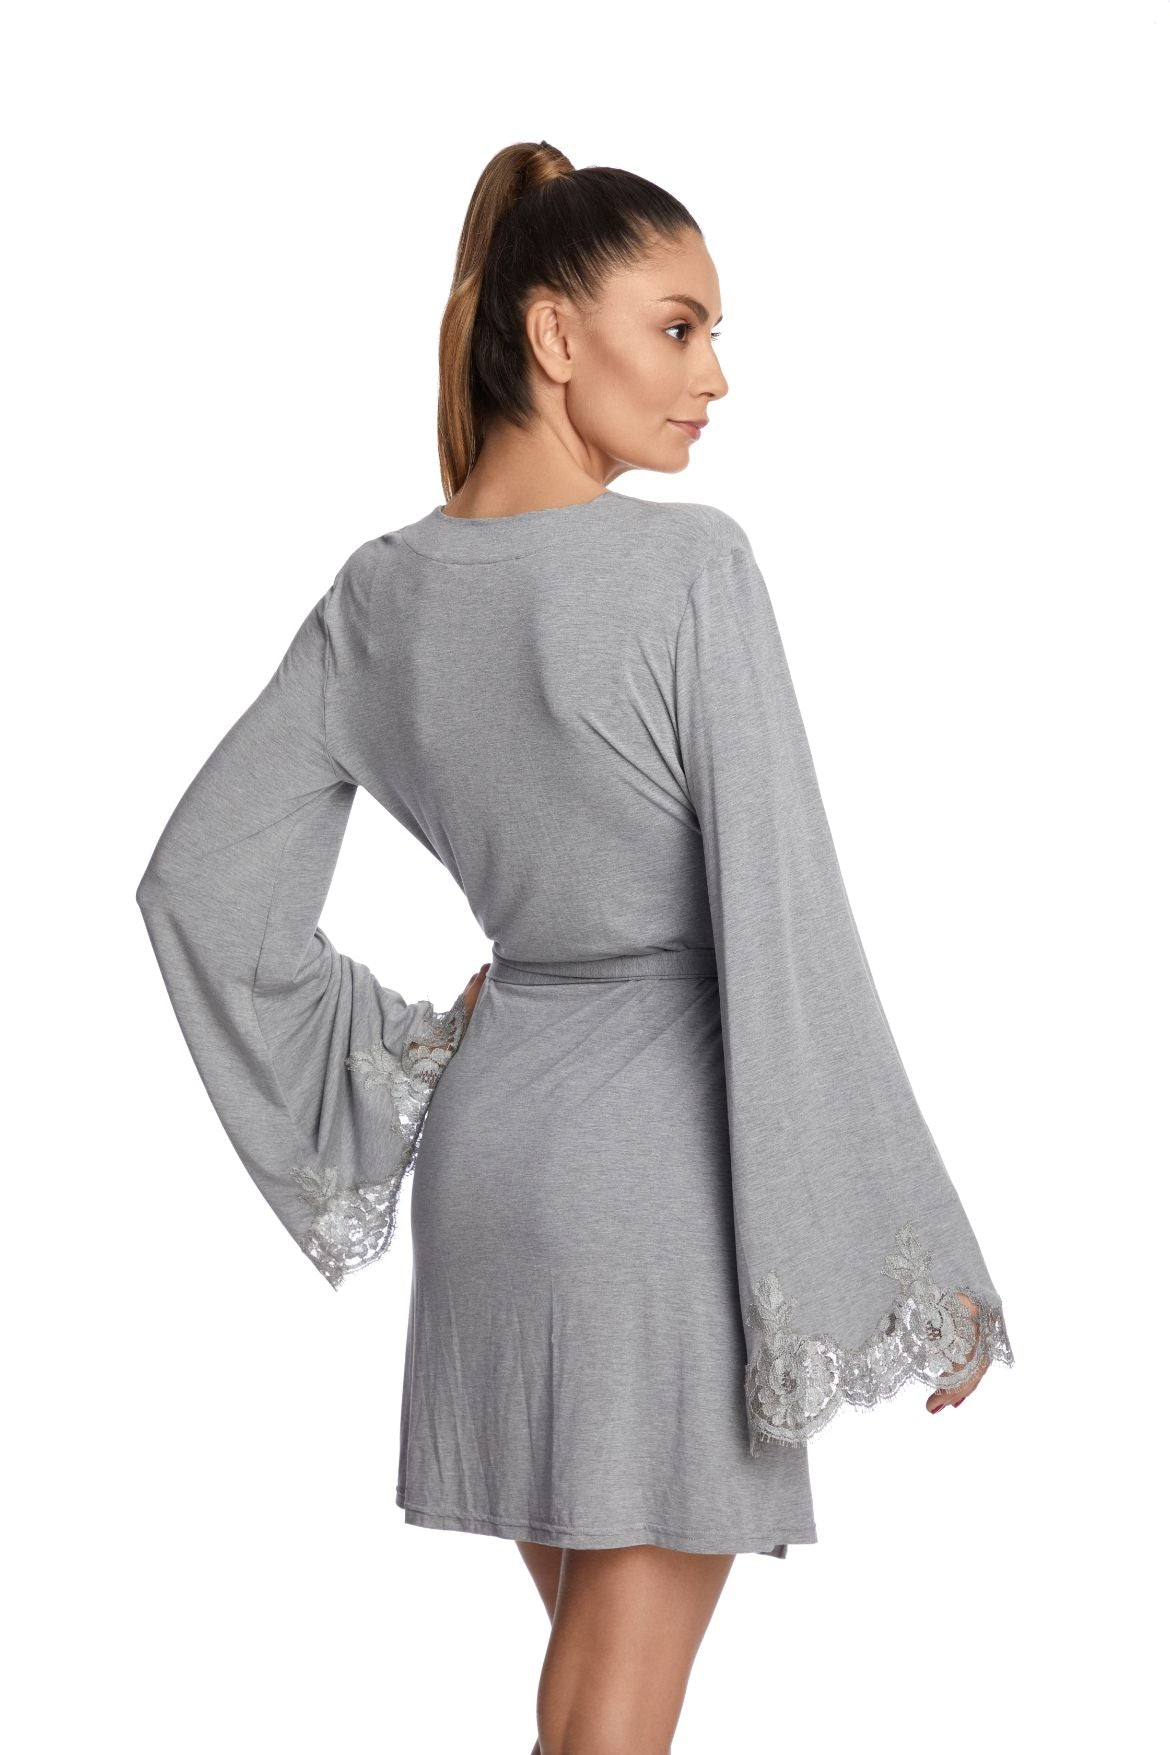 Heavenly Freshness Robe in Silver Grey - I.D. Sarrieri